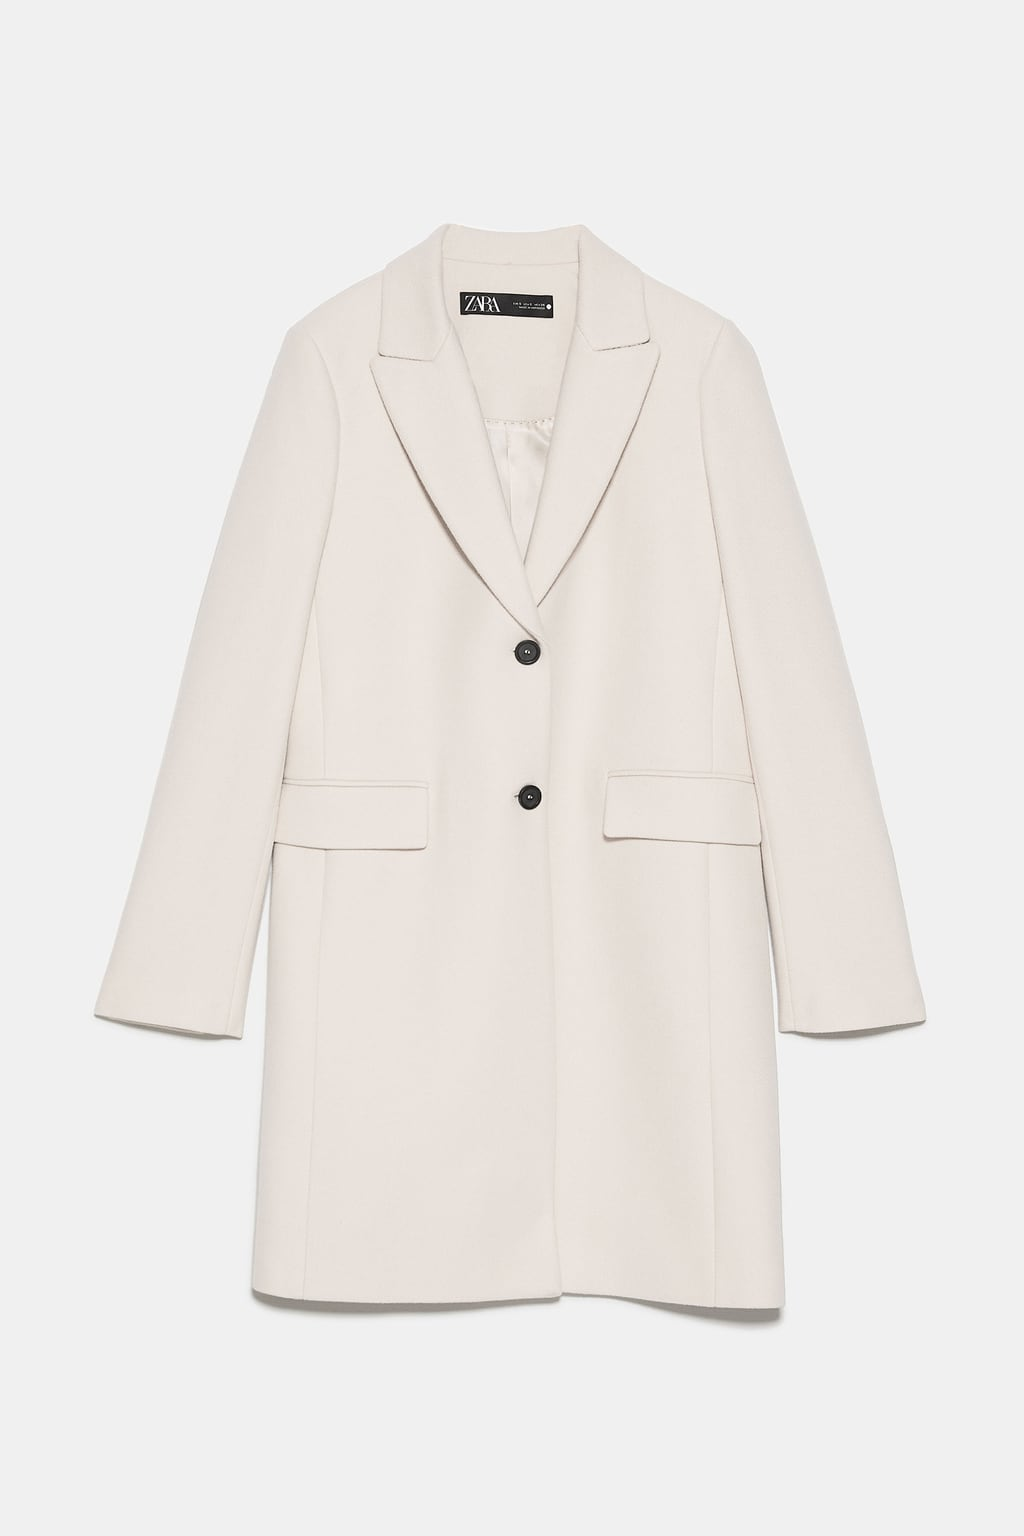 Zara Menswear Coat - White